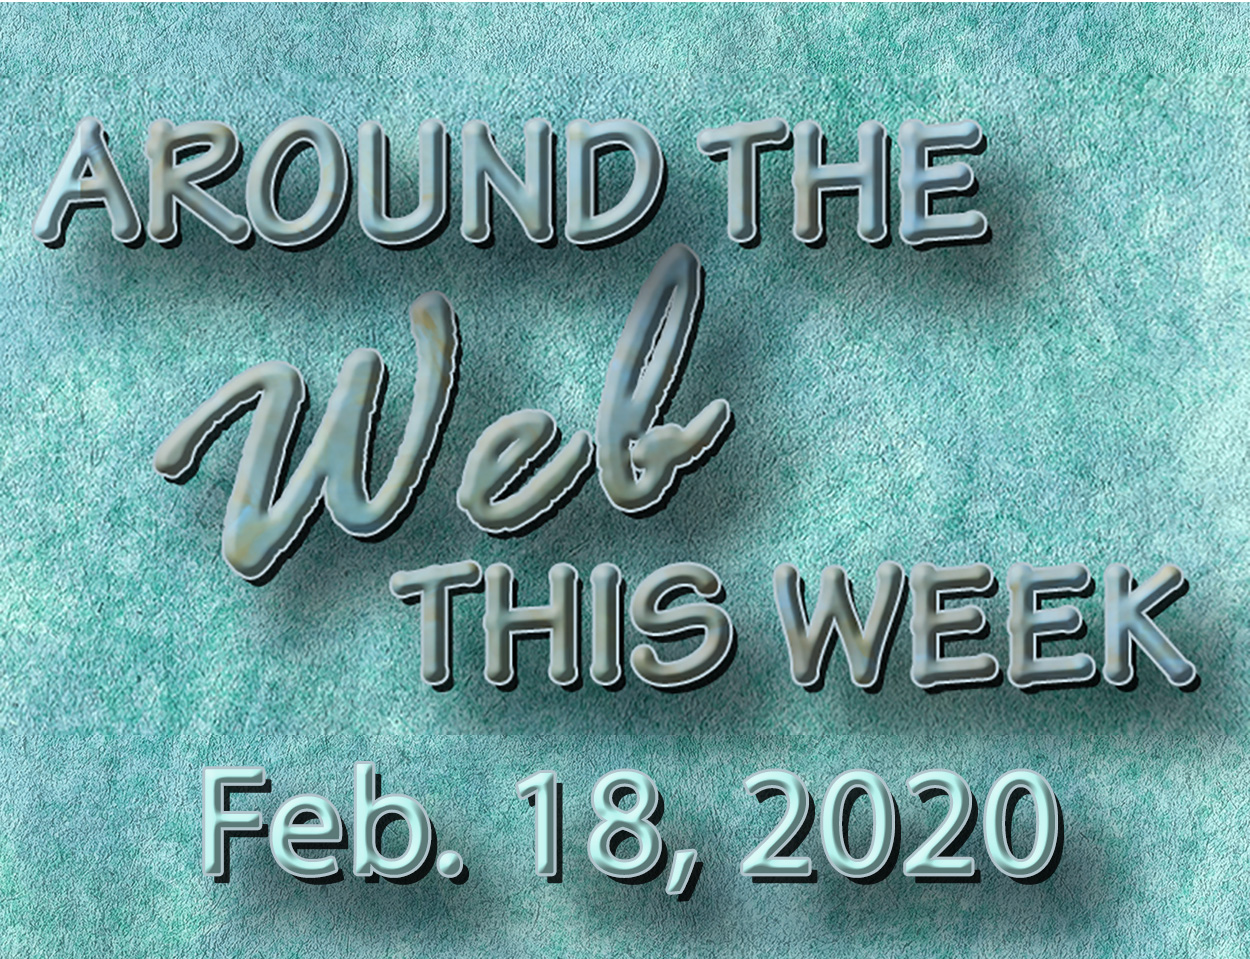 Around the Web Feb. 18